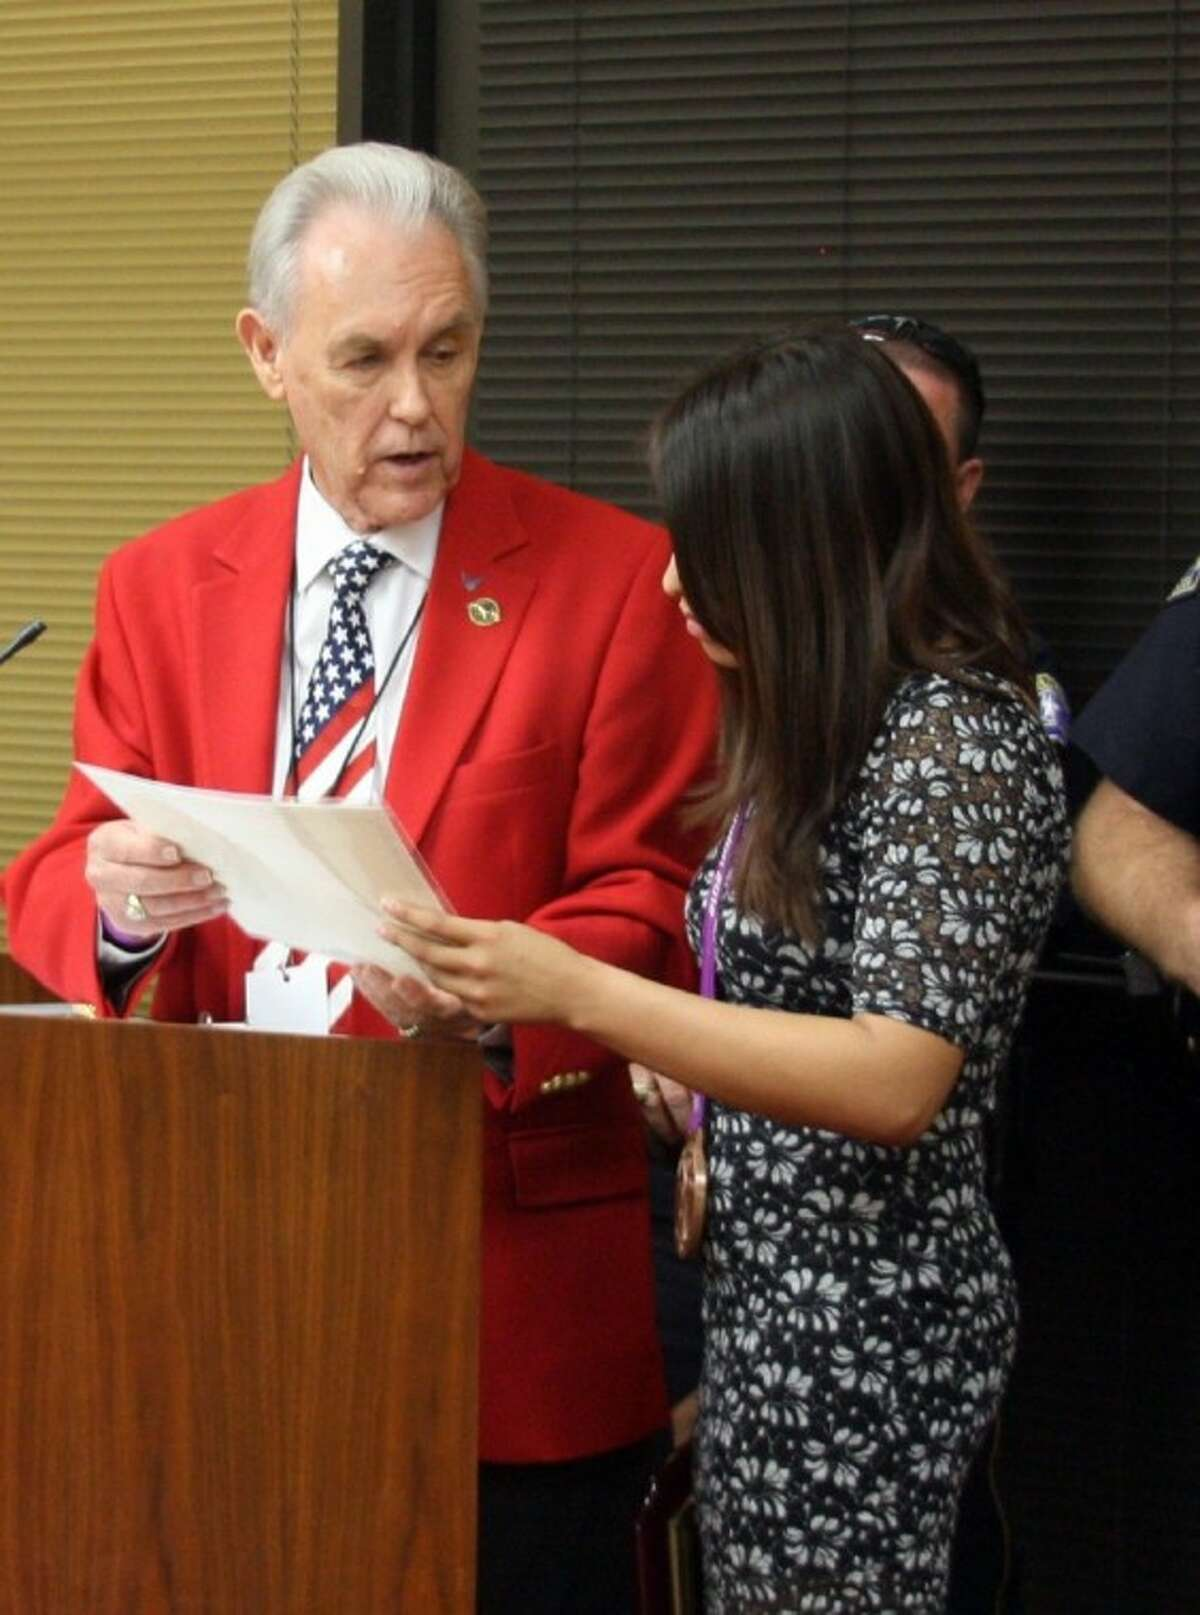 Richard Scott, director of community relations in Pasadena, is shown with Olympic medalist Marlen Esparza during an awards ceremony at a City Council meeting in 2012. On Tuesday, Scott testified in a voting rights lawsuit that he regretted breaking state ethics laws.